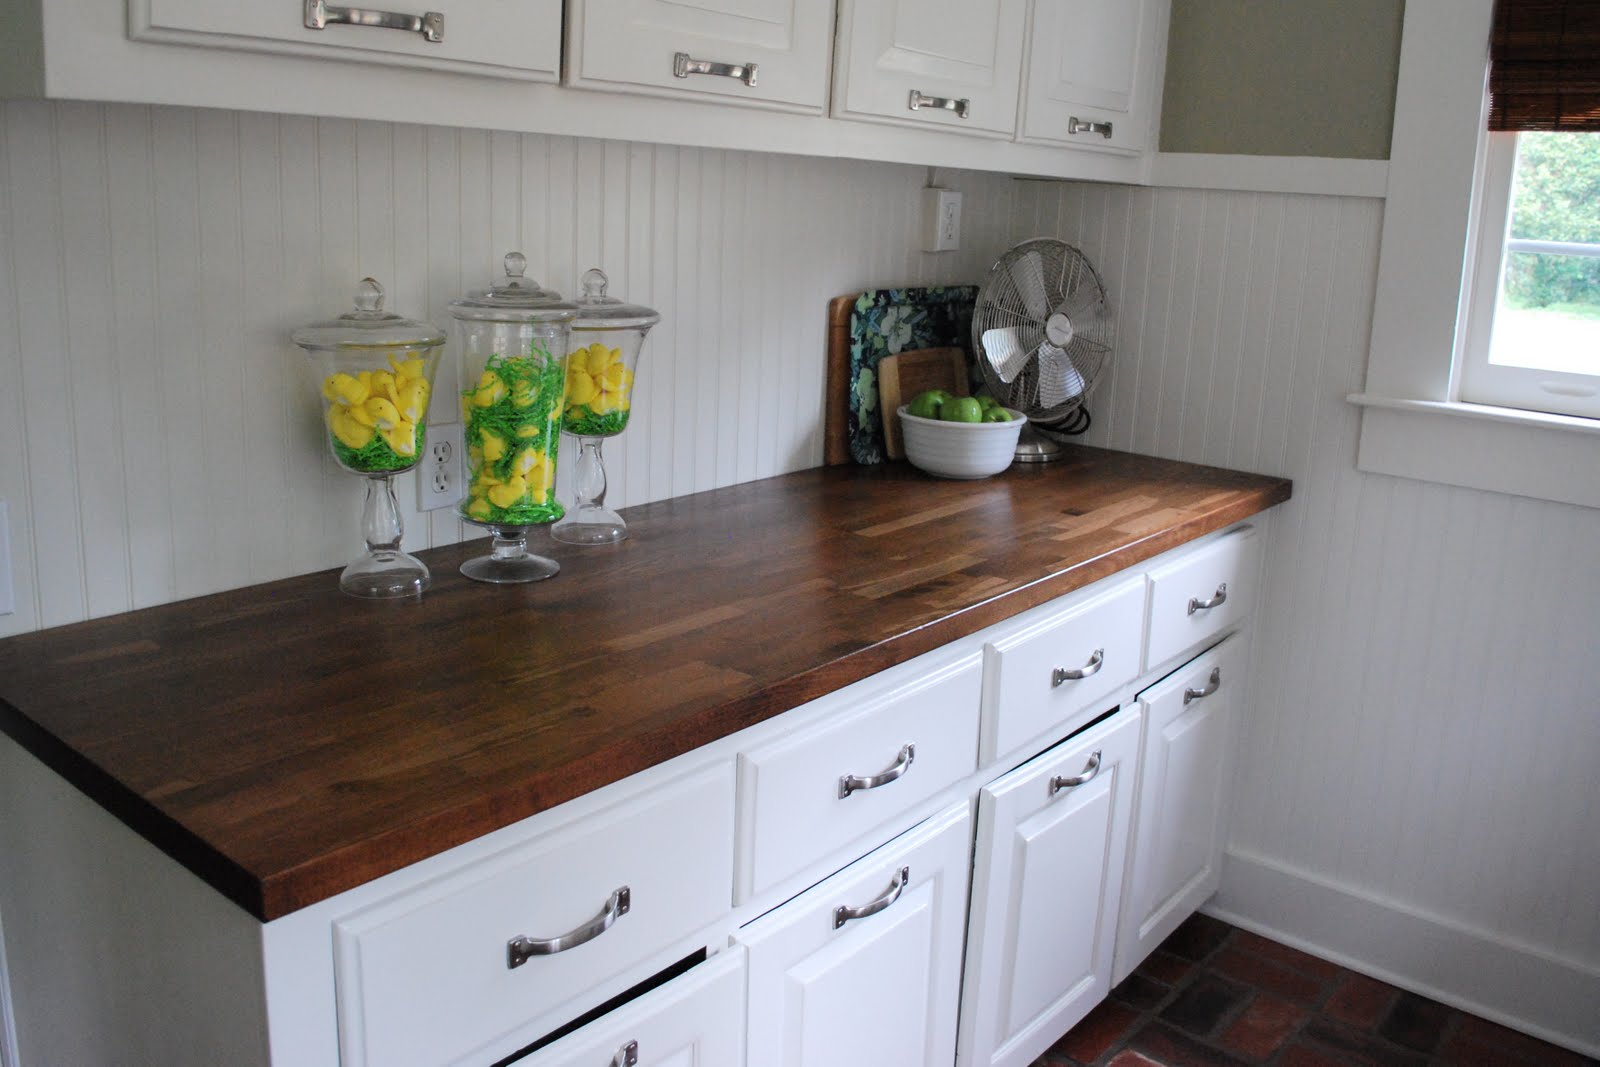 Ikea Countertop Materials : Butcher Block Countertops Great Option For Any Kitchen ...